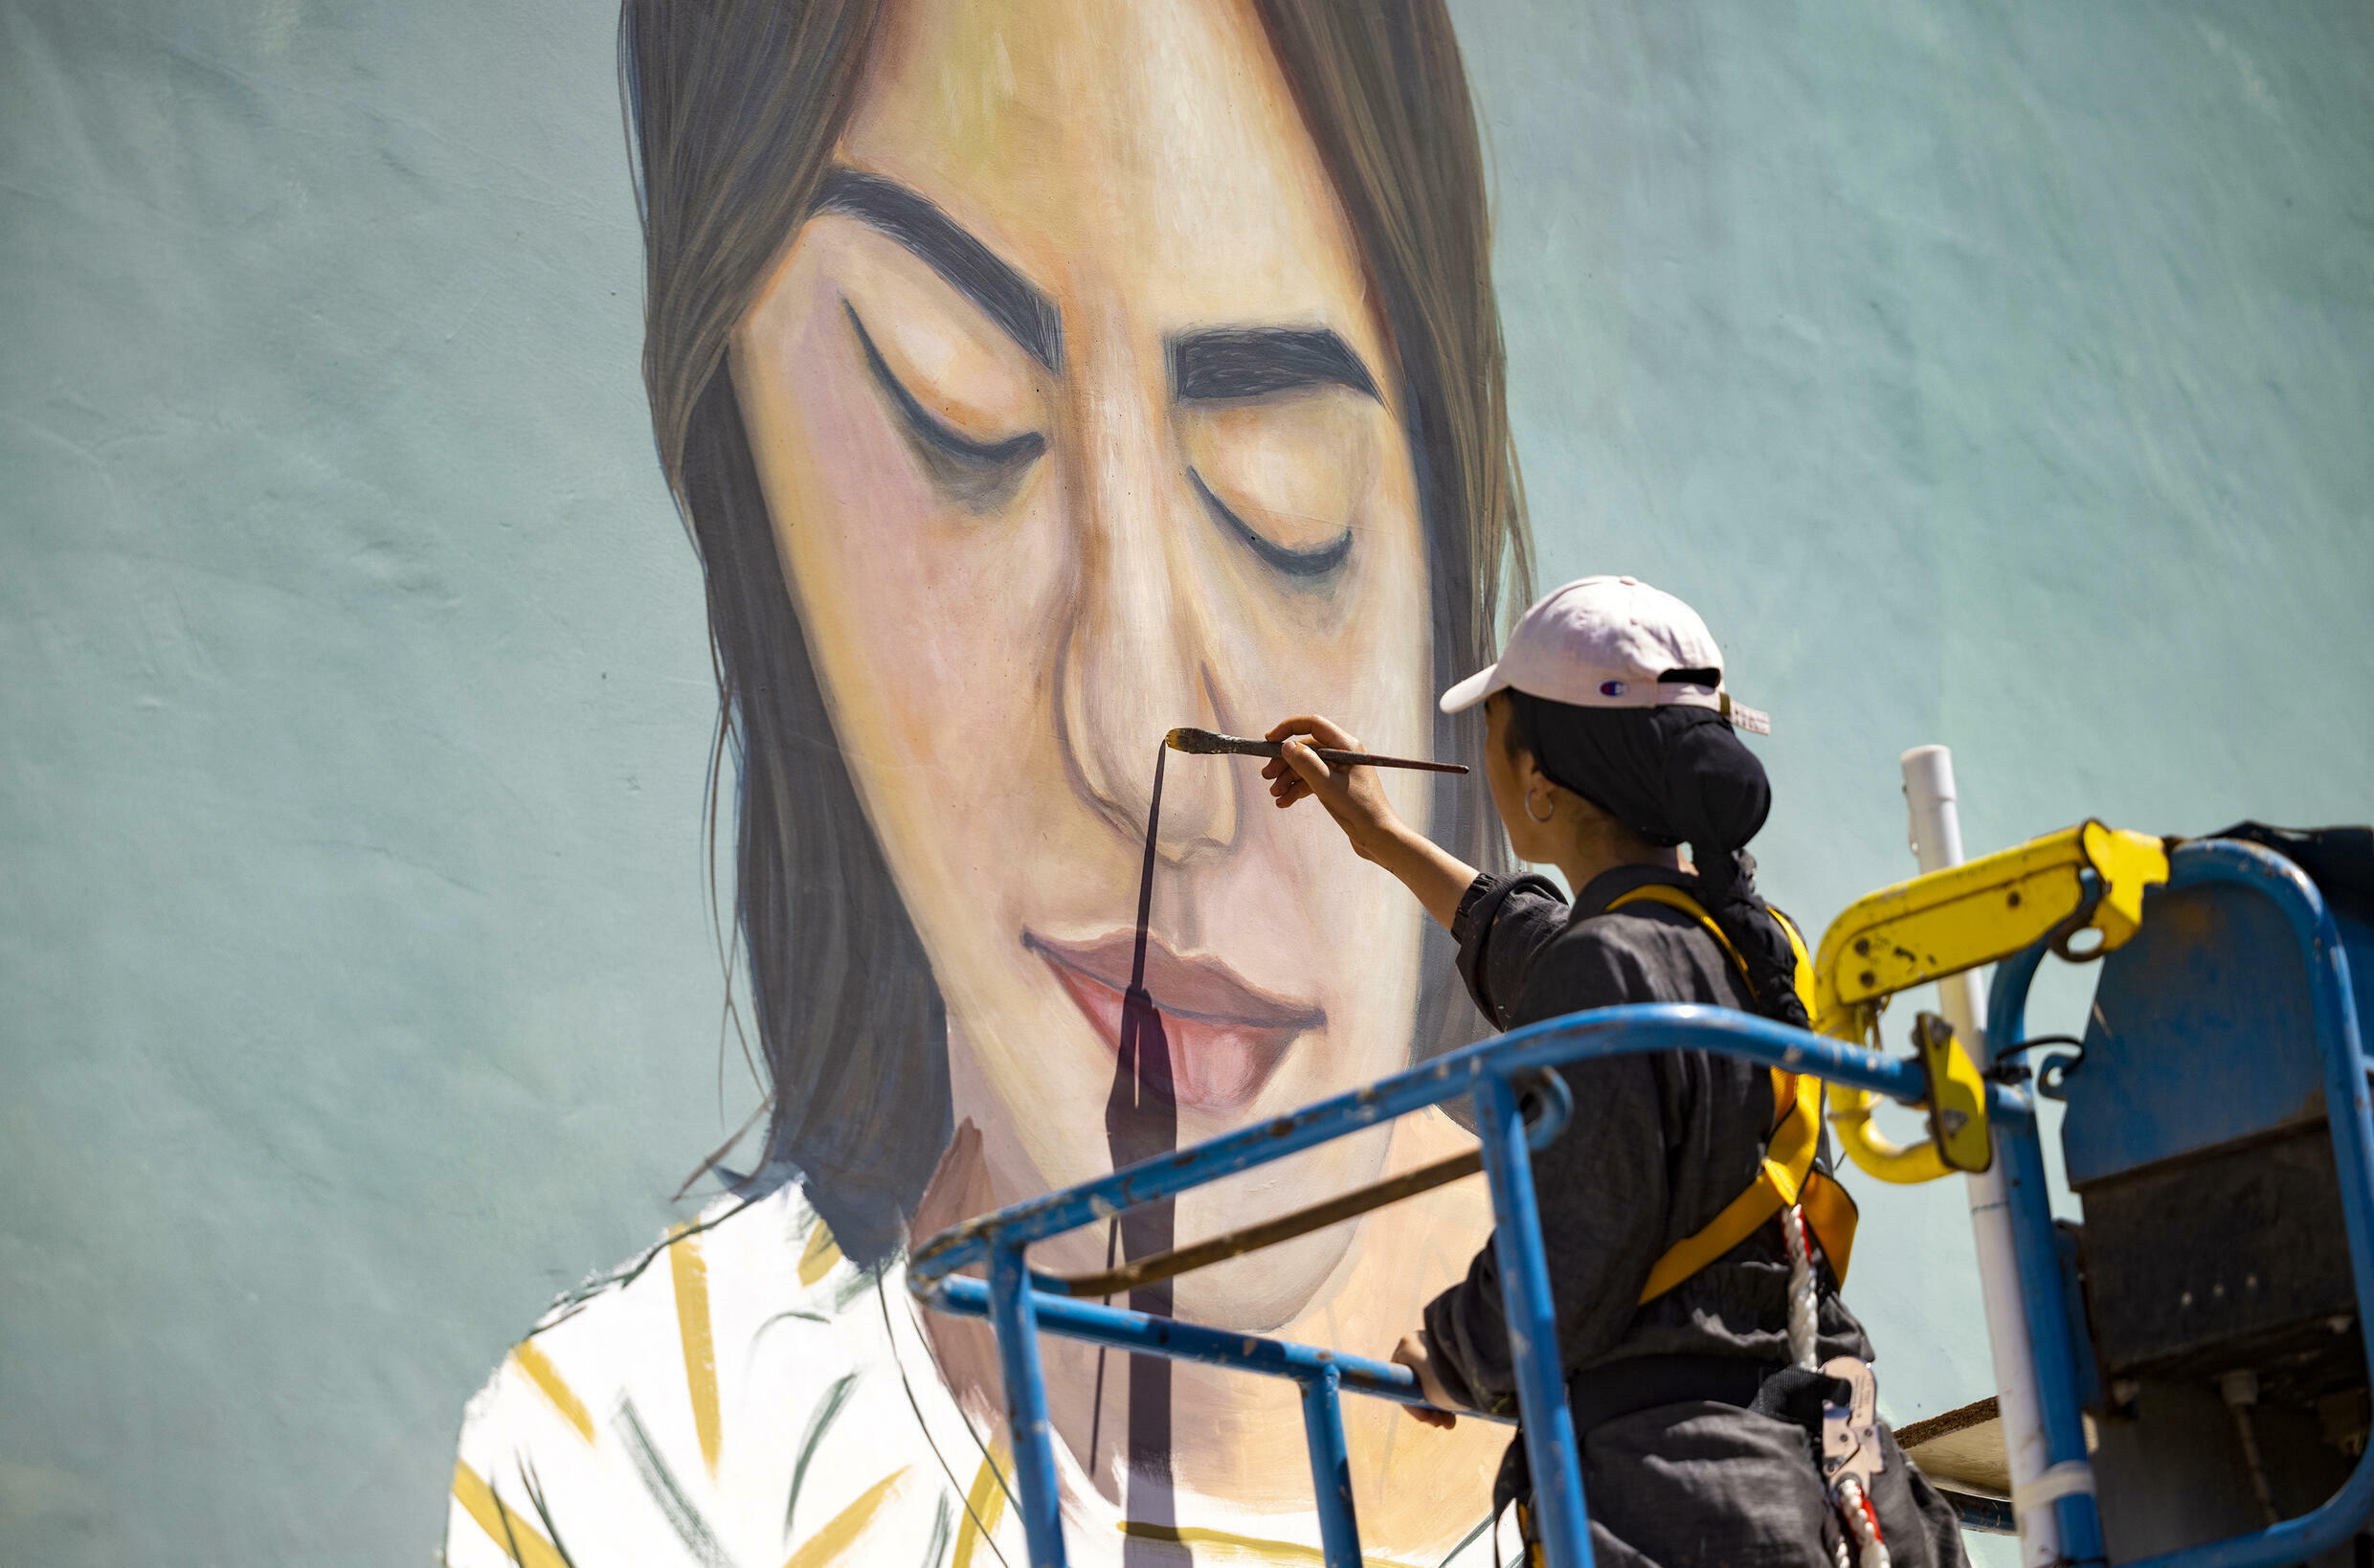 """Imane Droby, a female street artist who also took part in the festival, says women have to """"double the effort"""" to make their mark"""